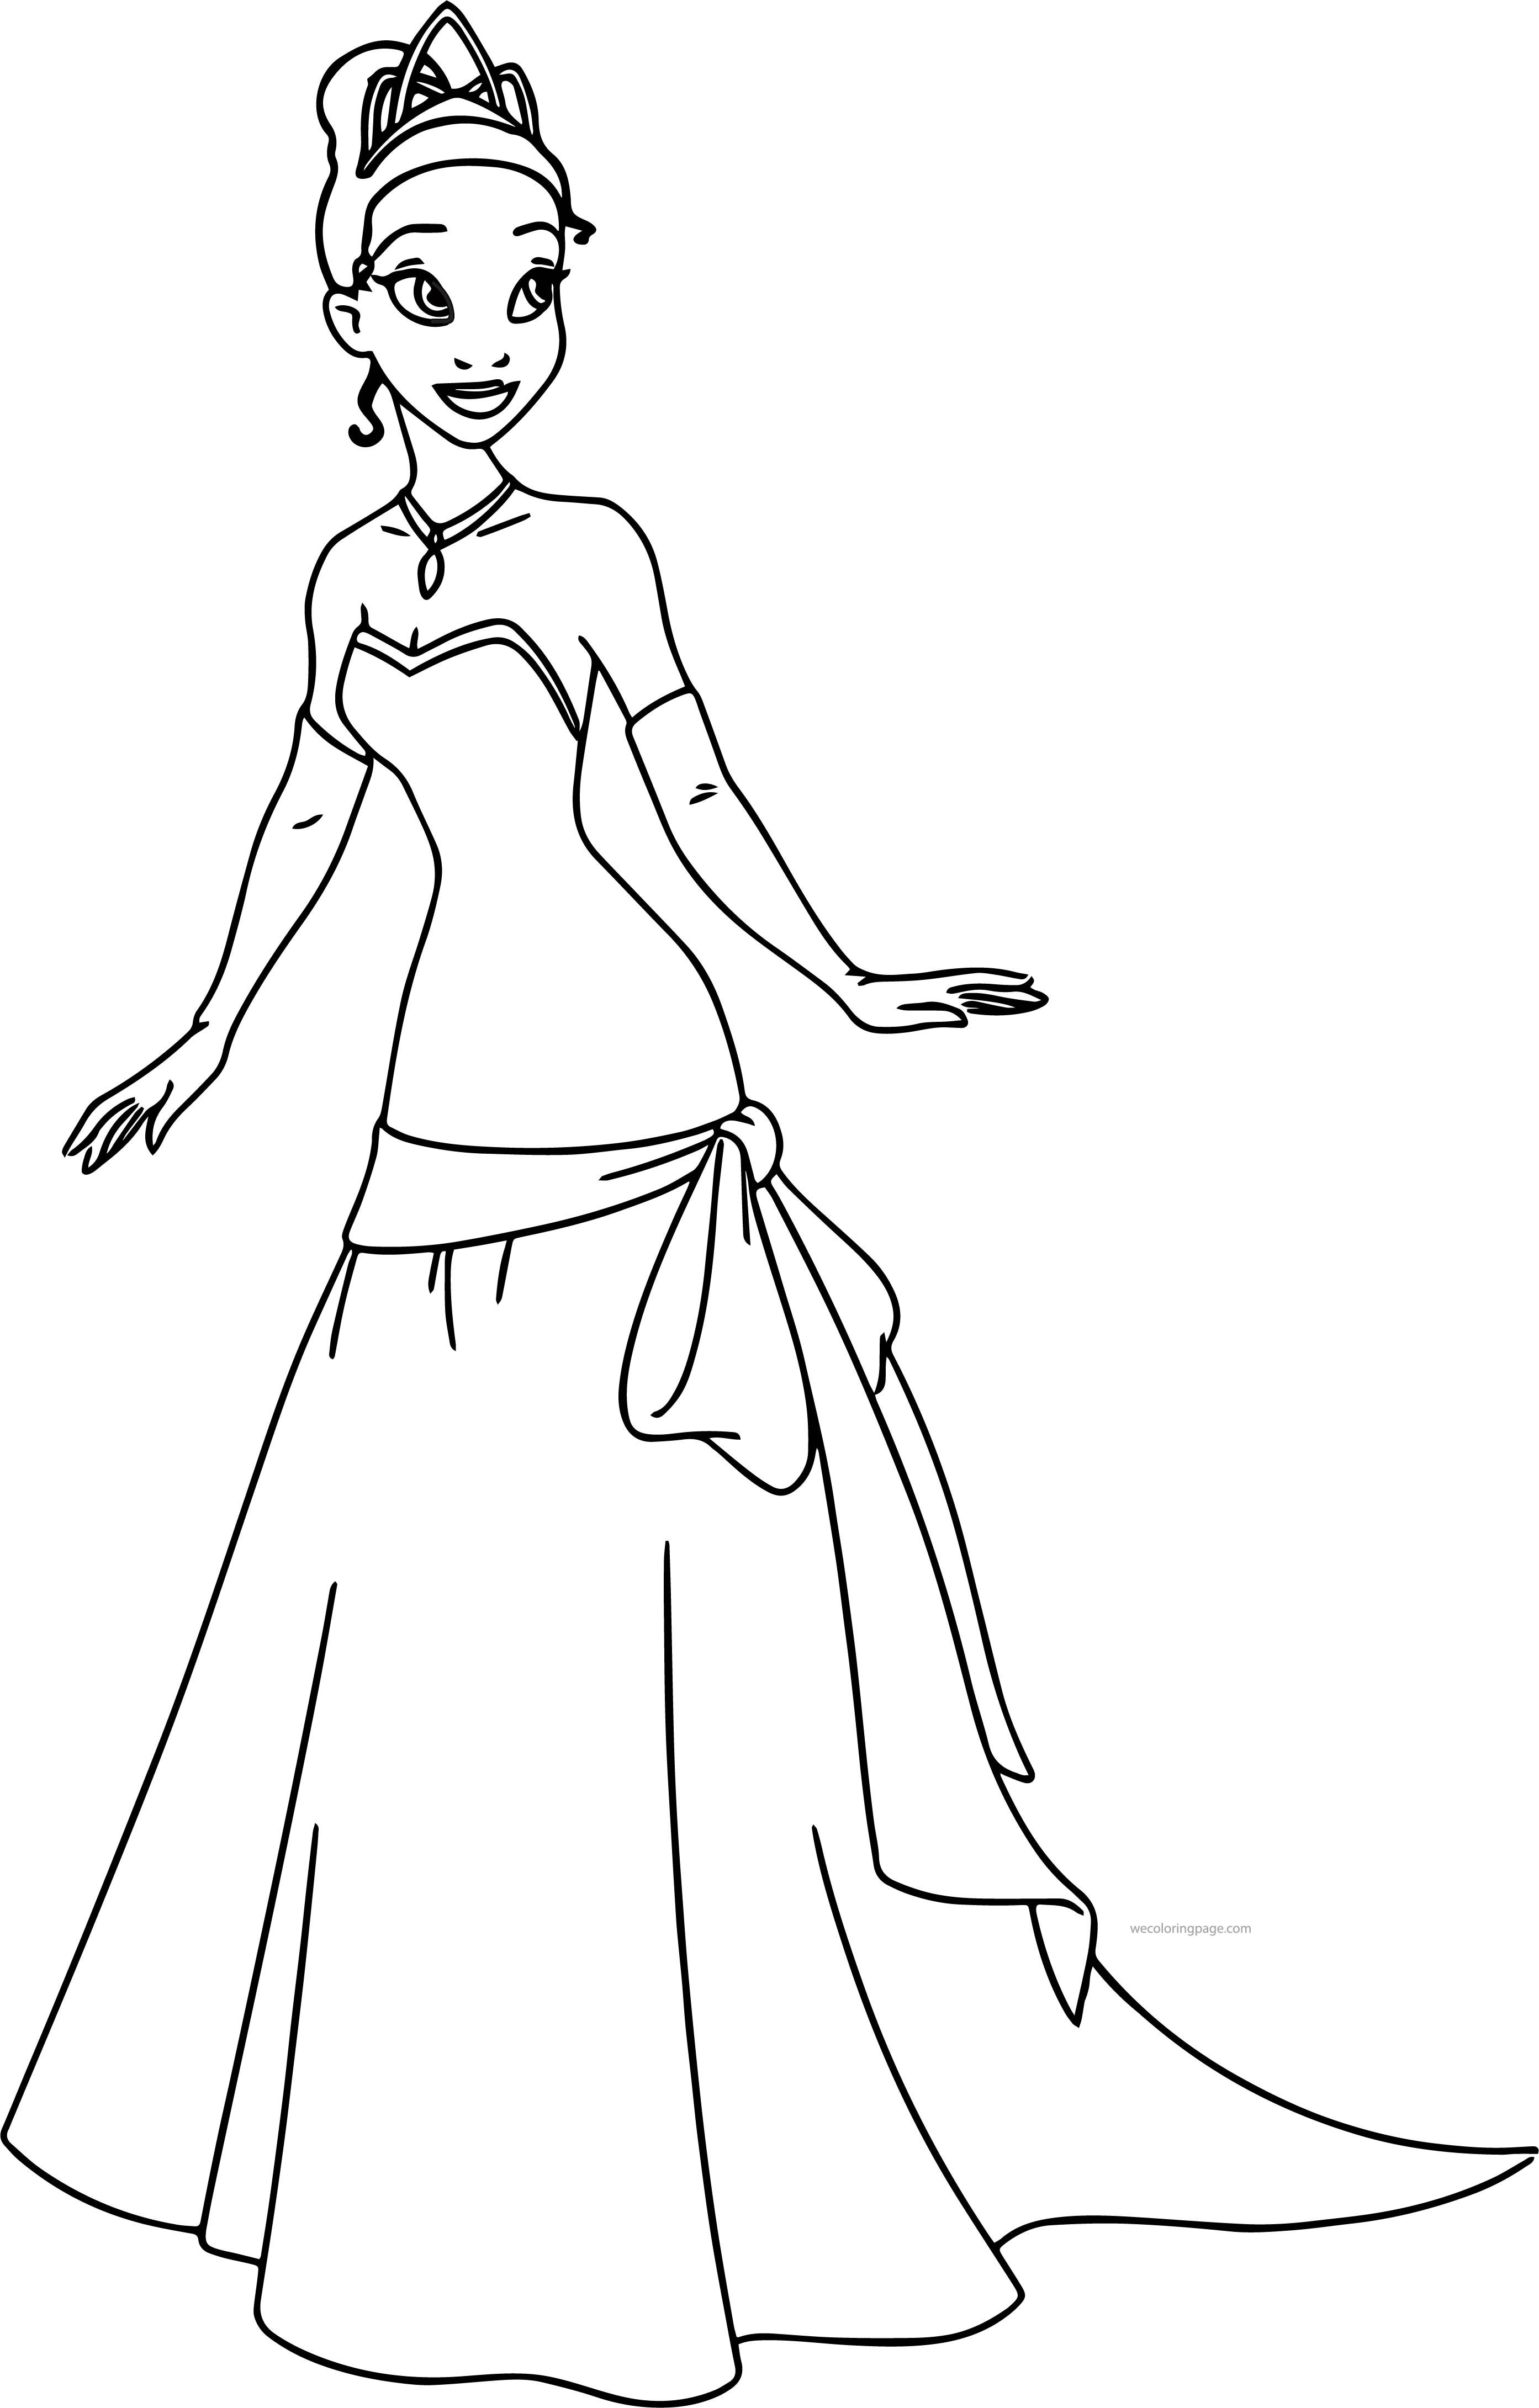 Cool Disney The Princess And The Frog Perfect Tiana Dress Coloring Page Disney Princess Coloring Pages Princess Coloring Pages Disney Princess Colors